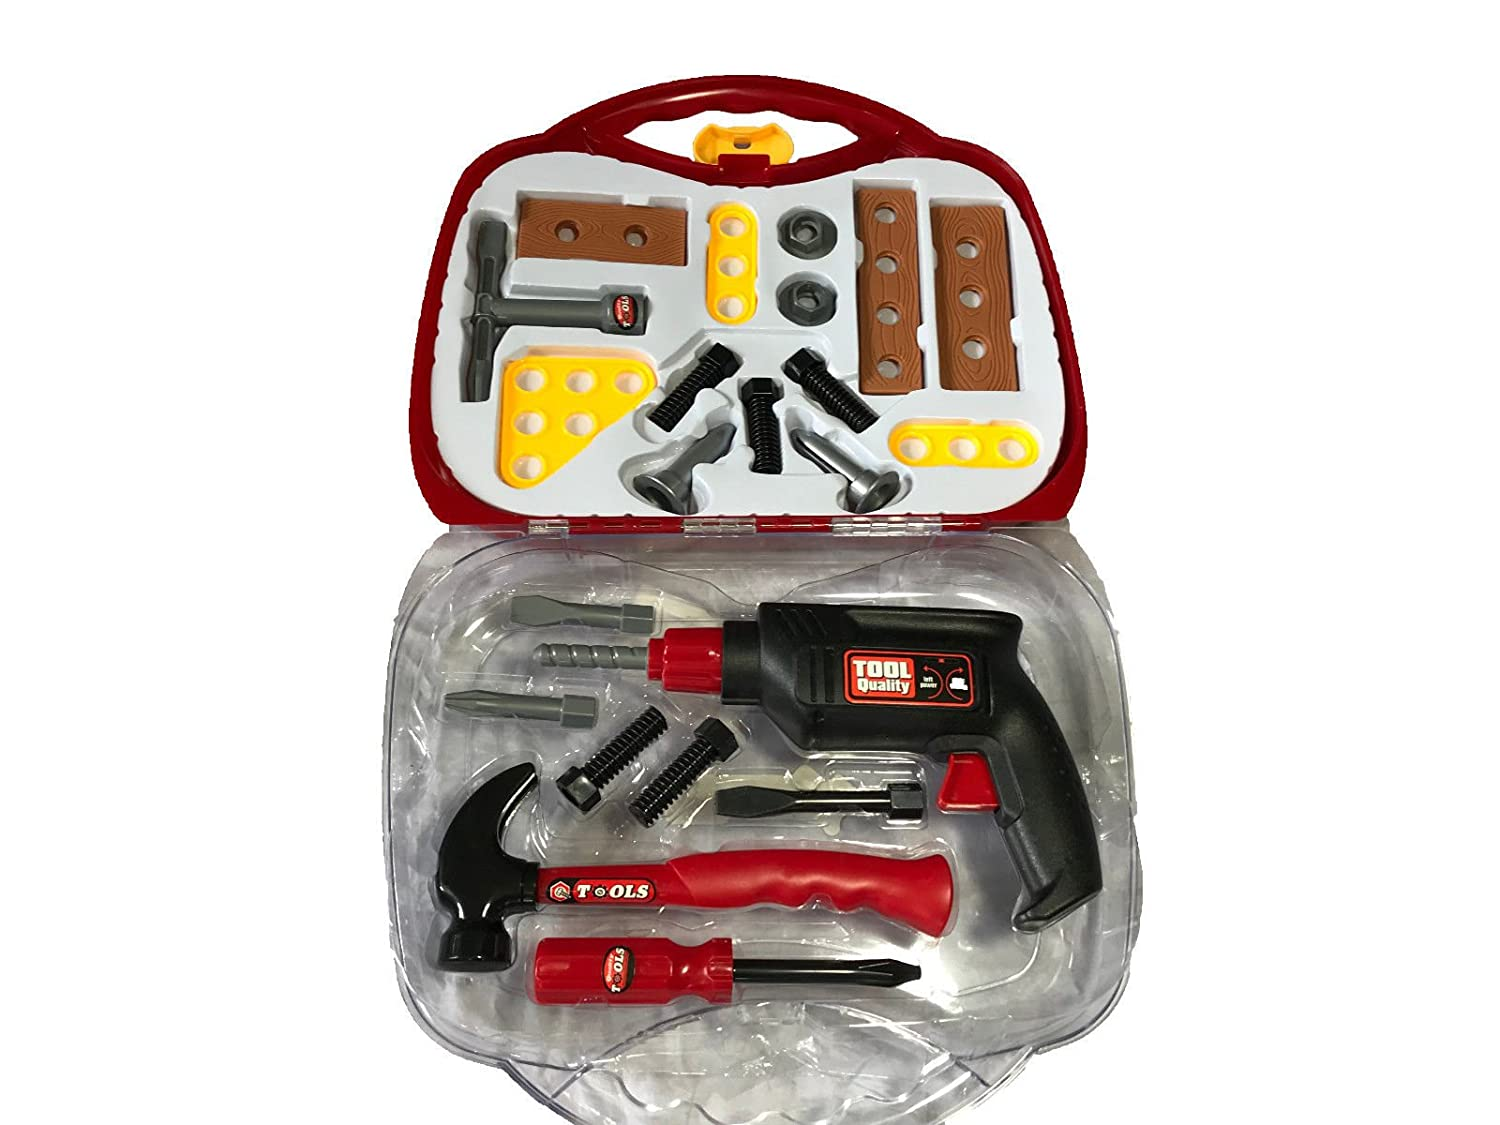 22 Piece Kids Tool Set in Hard Case with Rotating Drill Boys Builder DIY Construction Role Play Toy Quickdraw QDS-Z00D